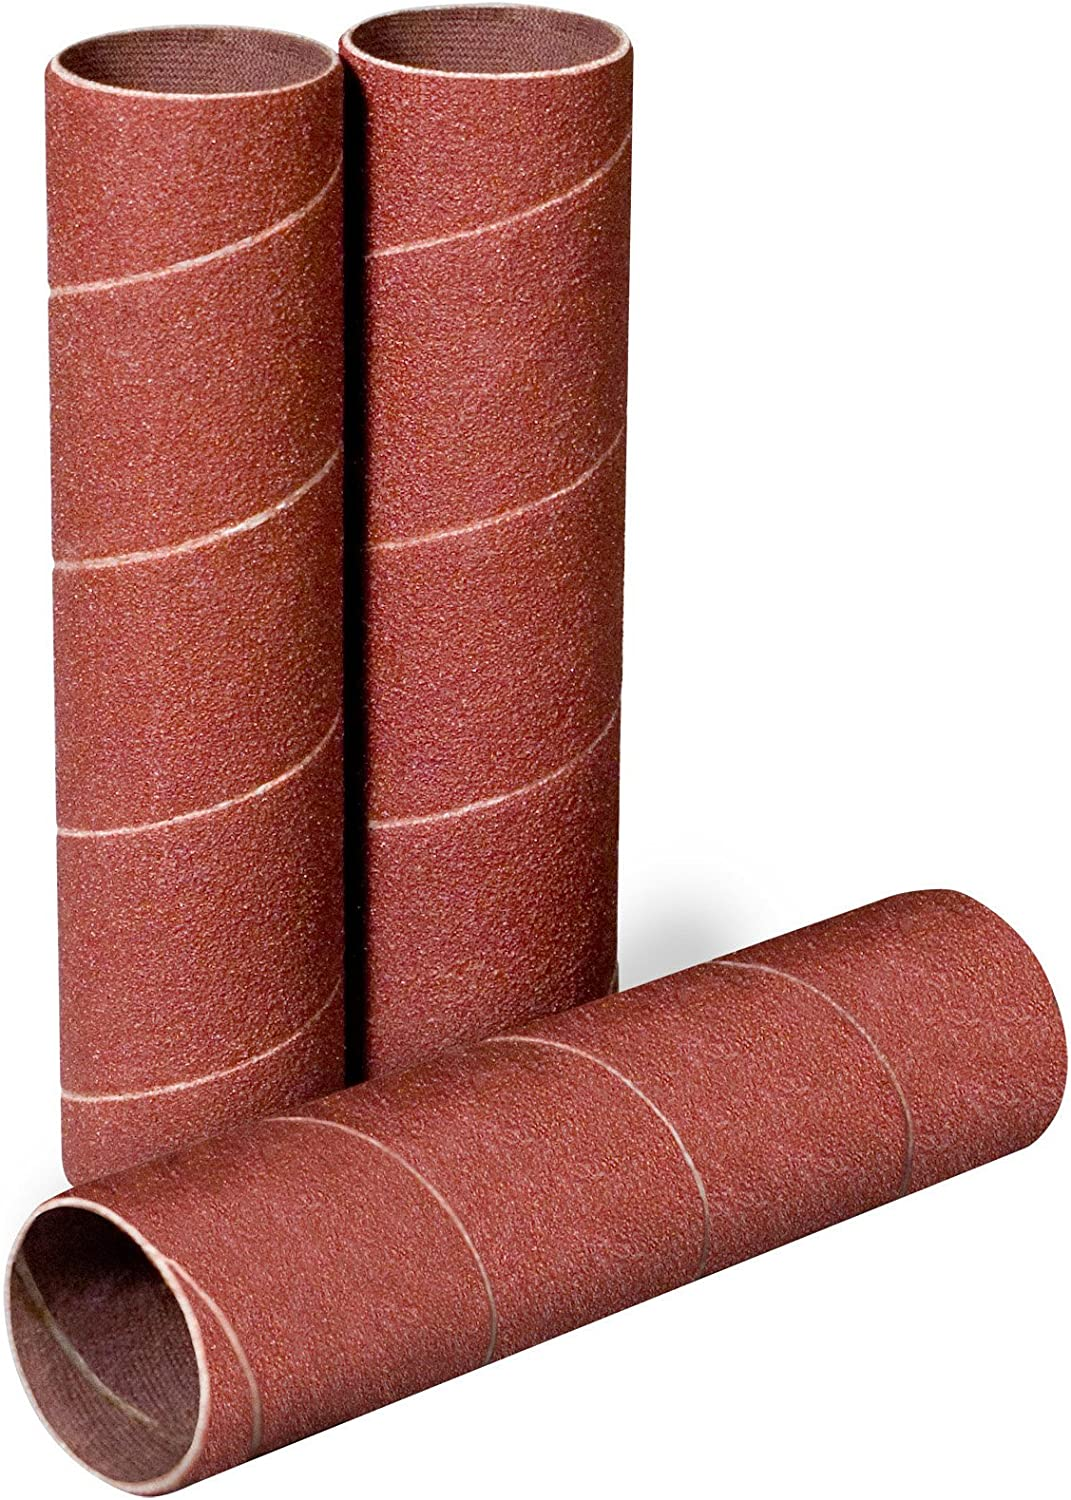 80 Grit 1//2 in Diameter Spiral Band Pack of 30 Pack Qty: 100, 1-1//2 in Wide